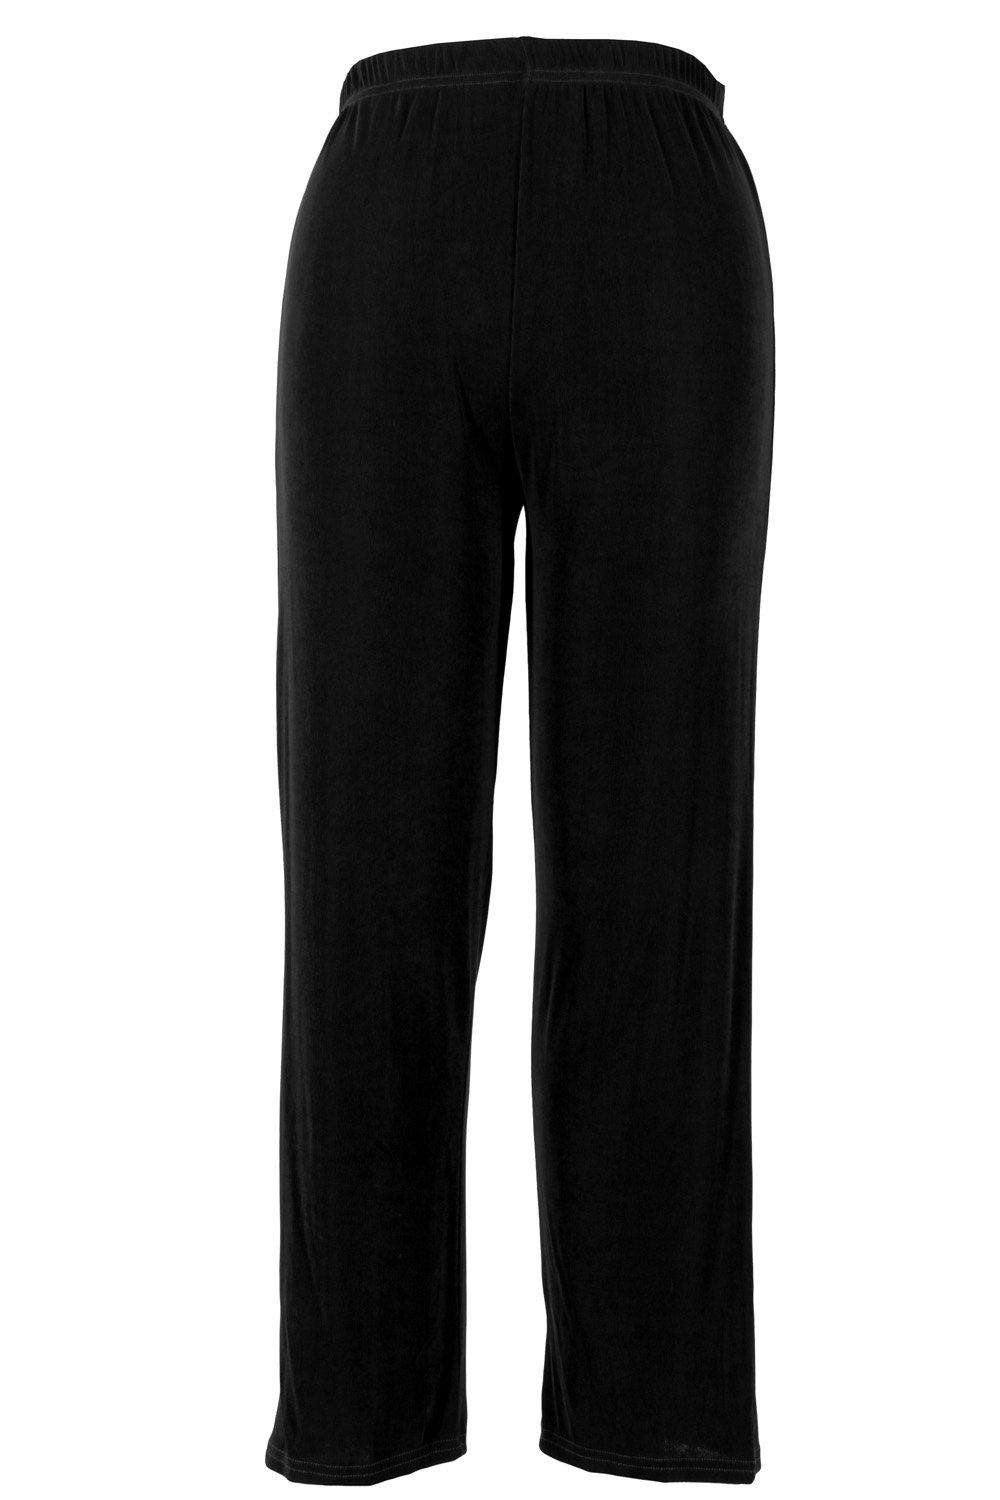 Jostar Acetate Big Pants with Plus Sizes in Black Color in 3XL Size